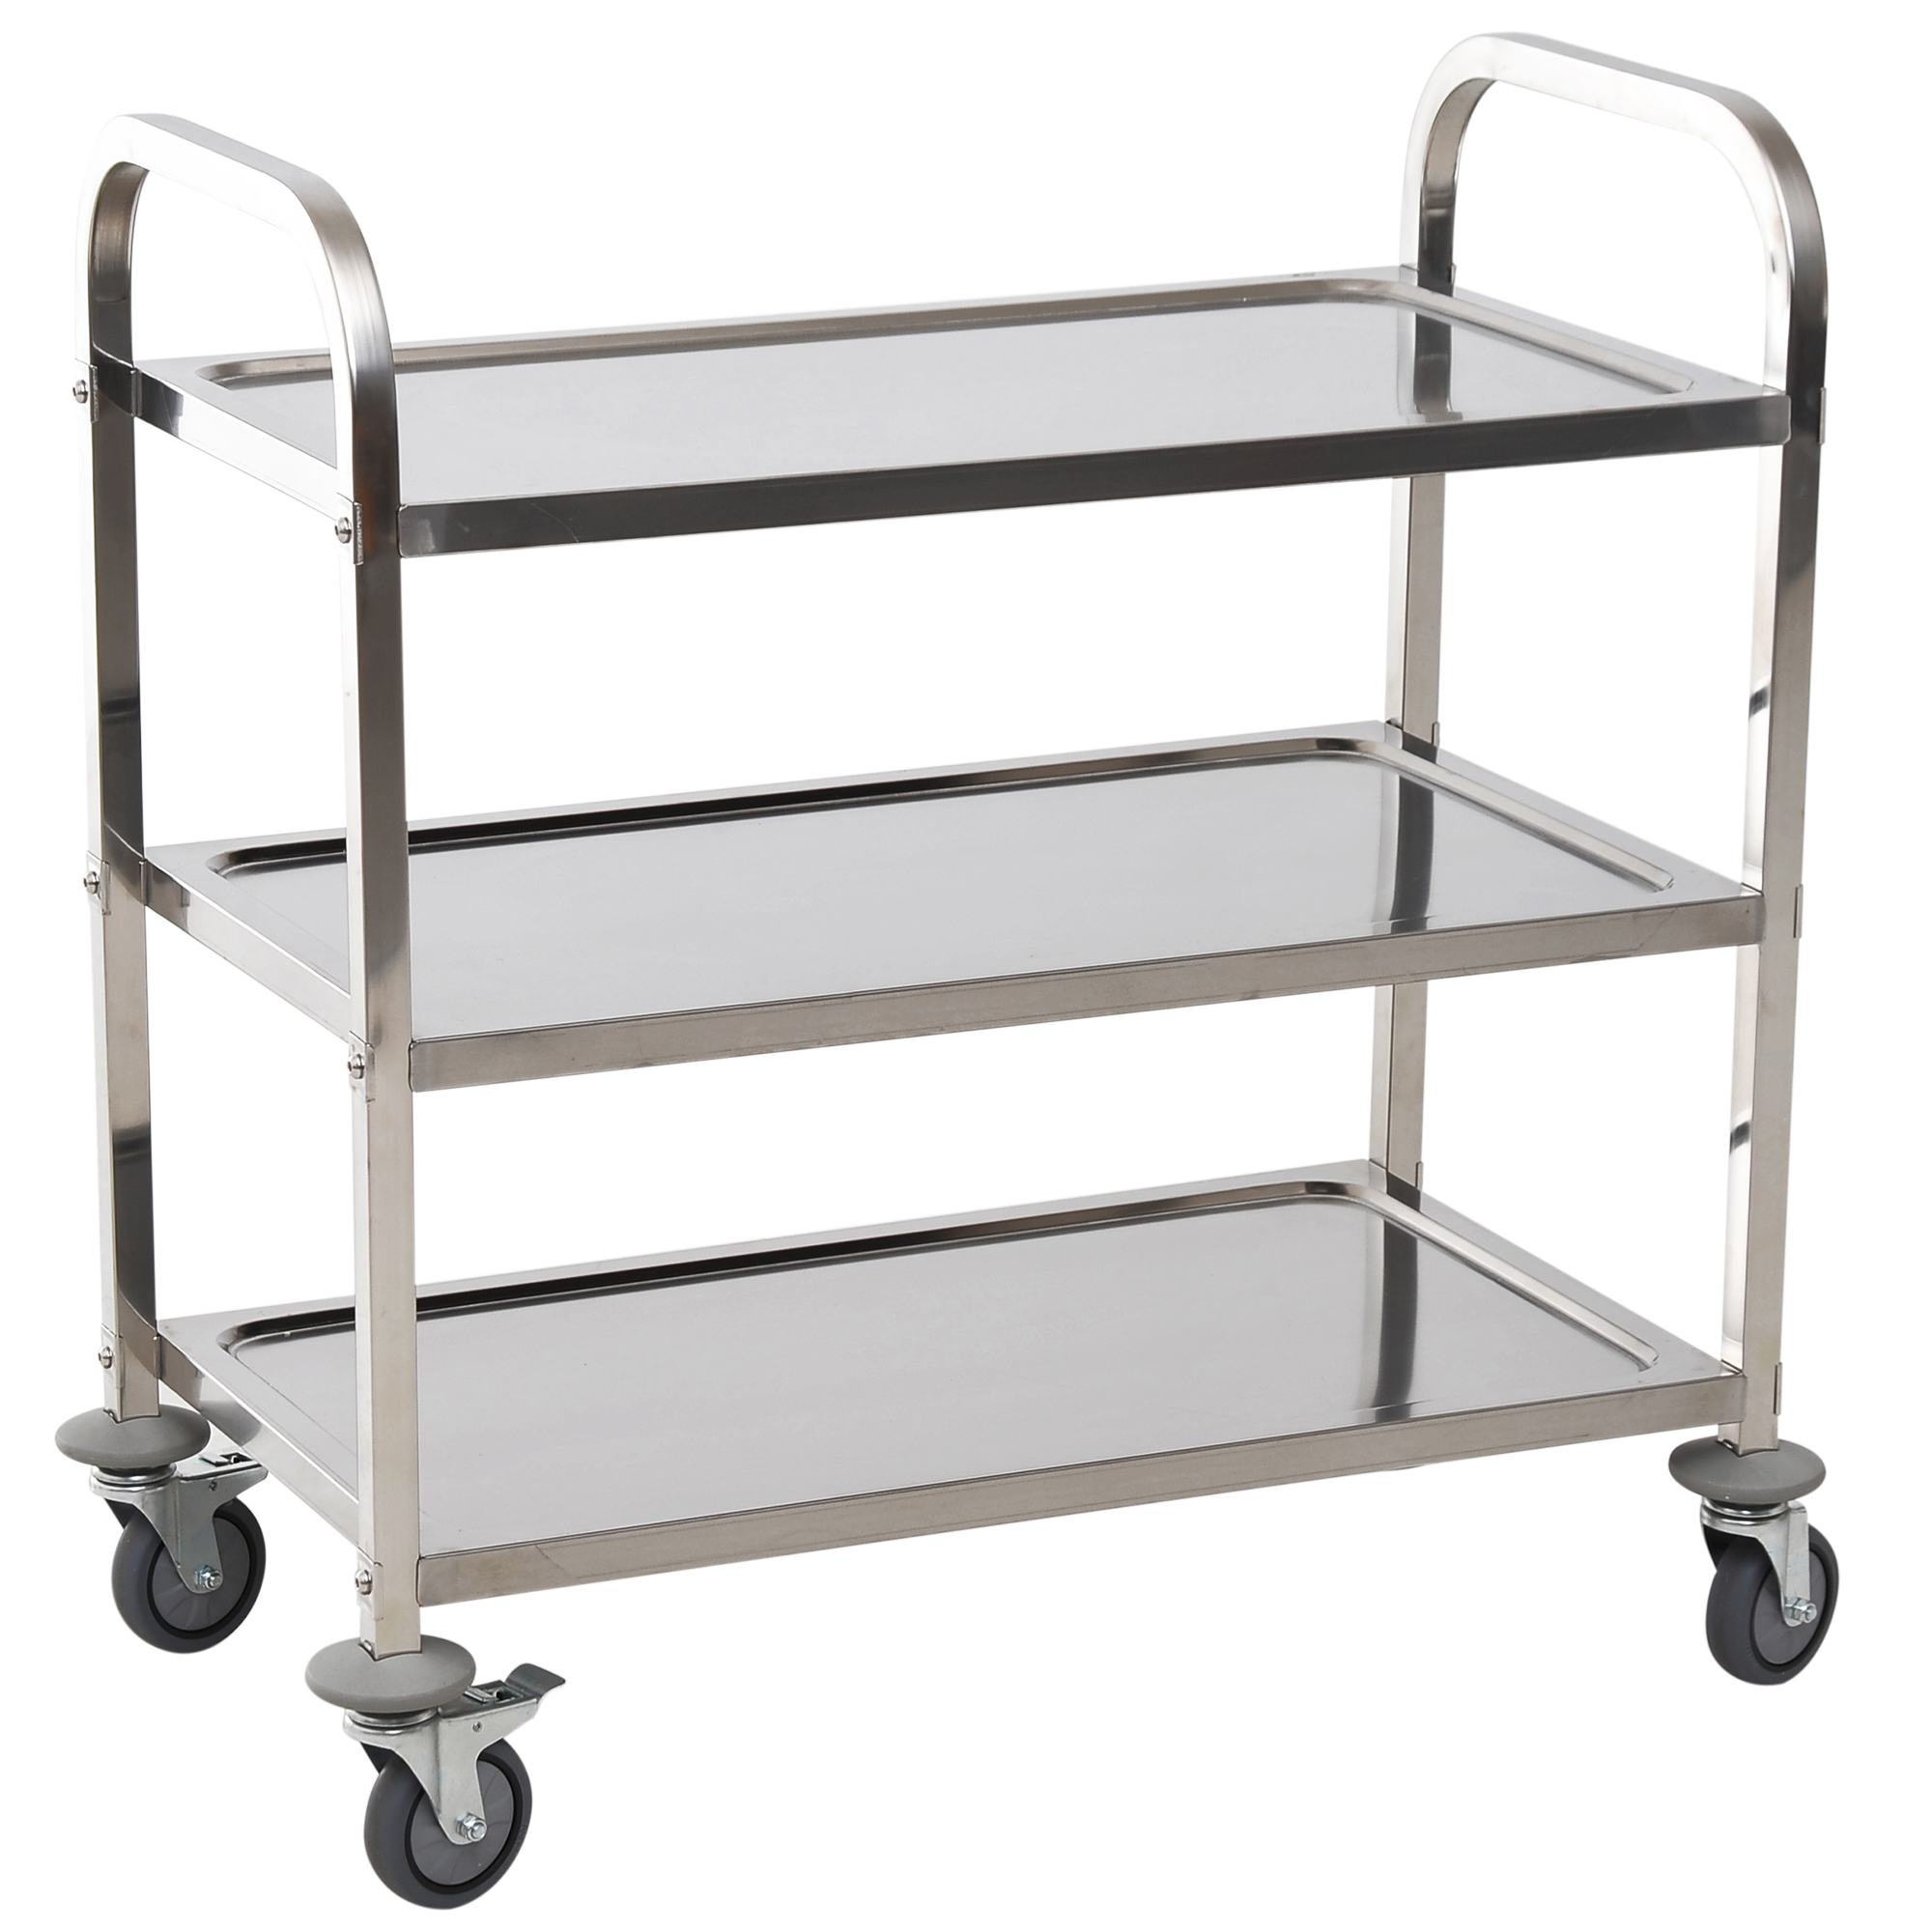 HOMCOM Trolley With 3 Shelves With Wheels Stainless Steel Kitchen 85x45x90cm Silver